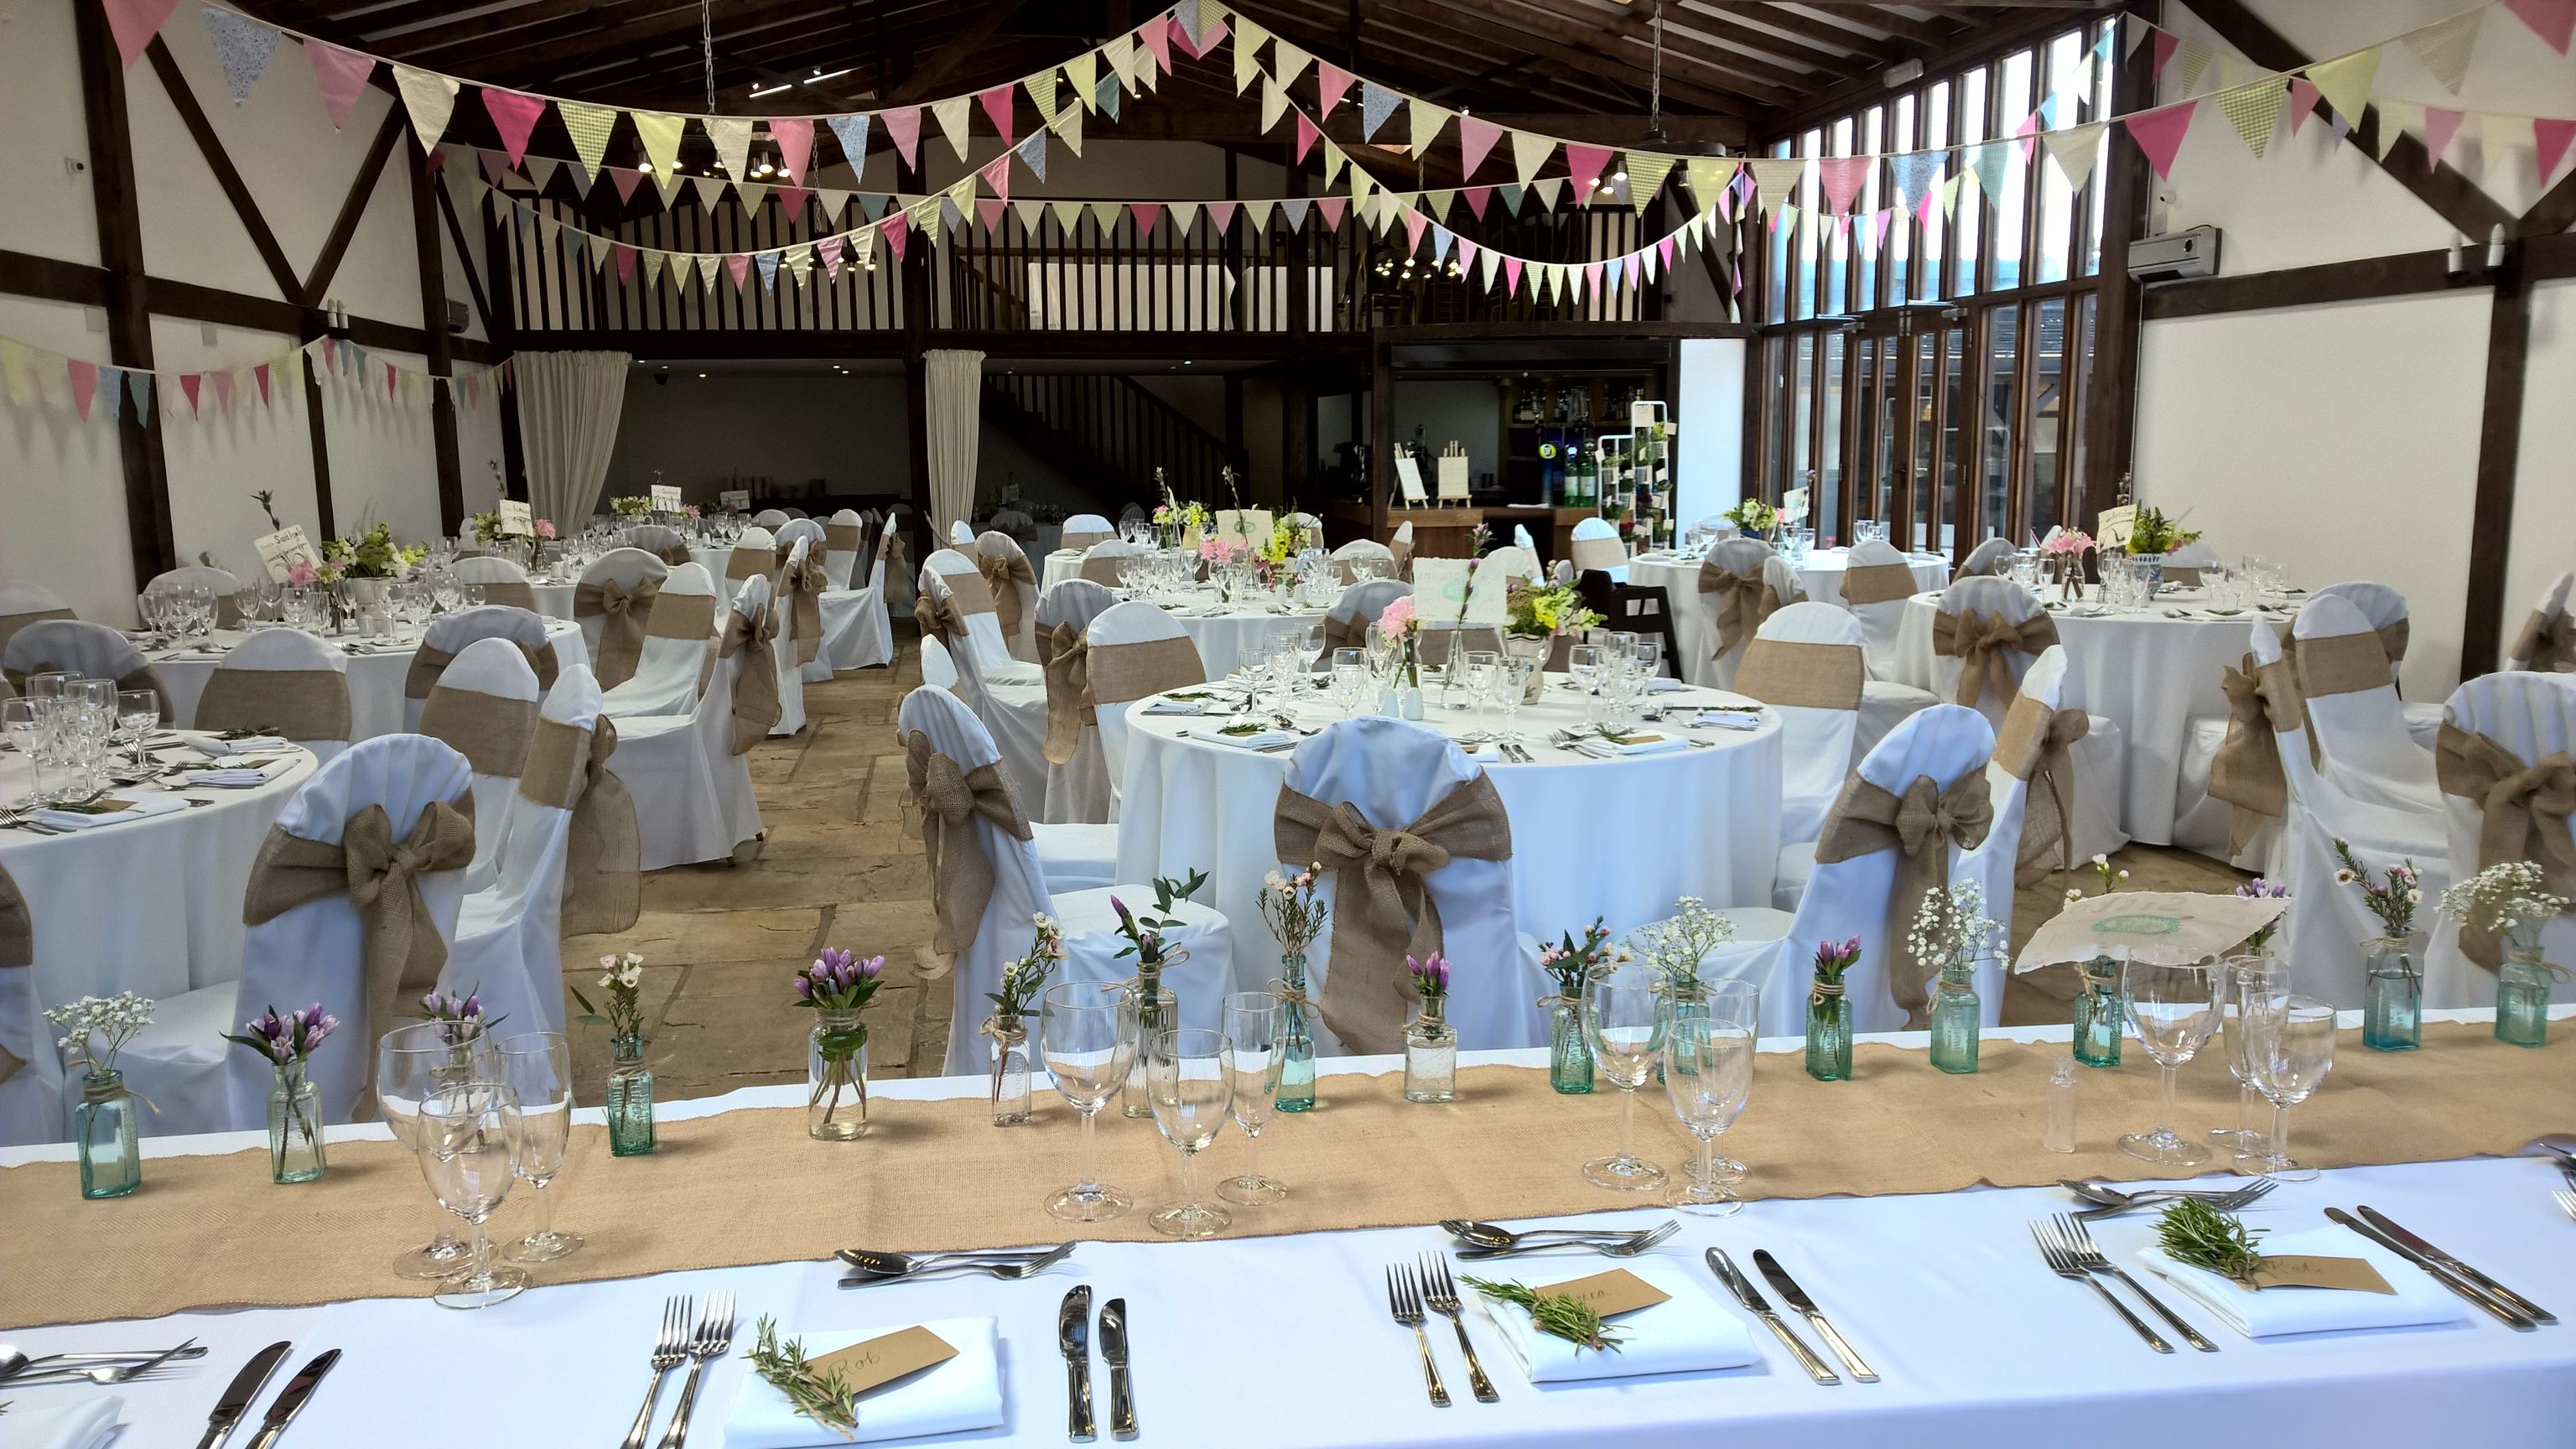 Natural Hessian Sashs Added To Our White Chair Covers Ceiling Bunting To Really Fin Vintage Wedding Decorations Barn Wedding Decorations Natural Wedding Decor